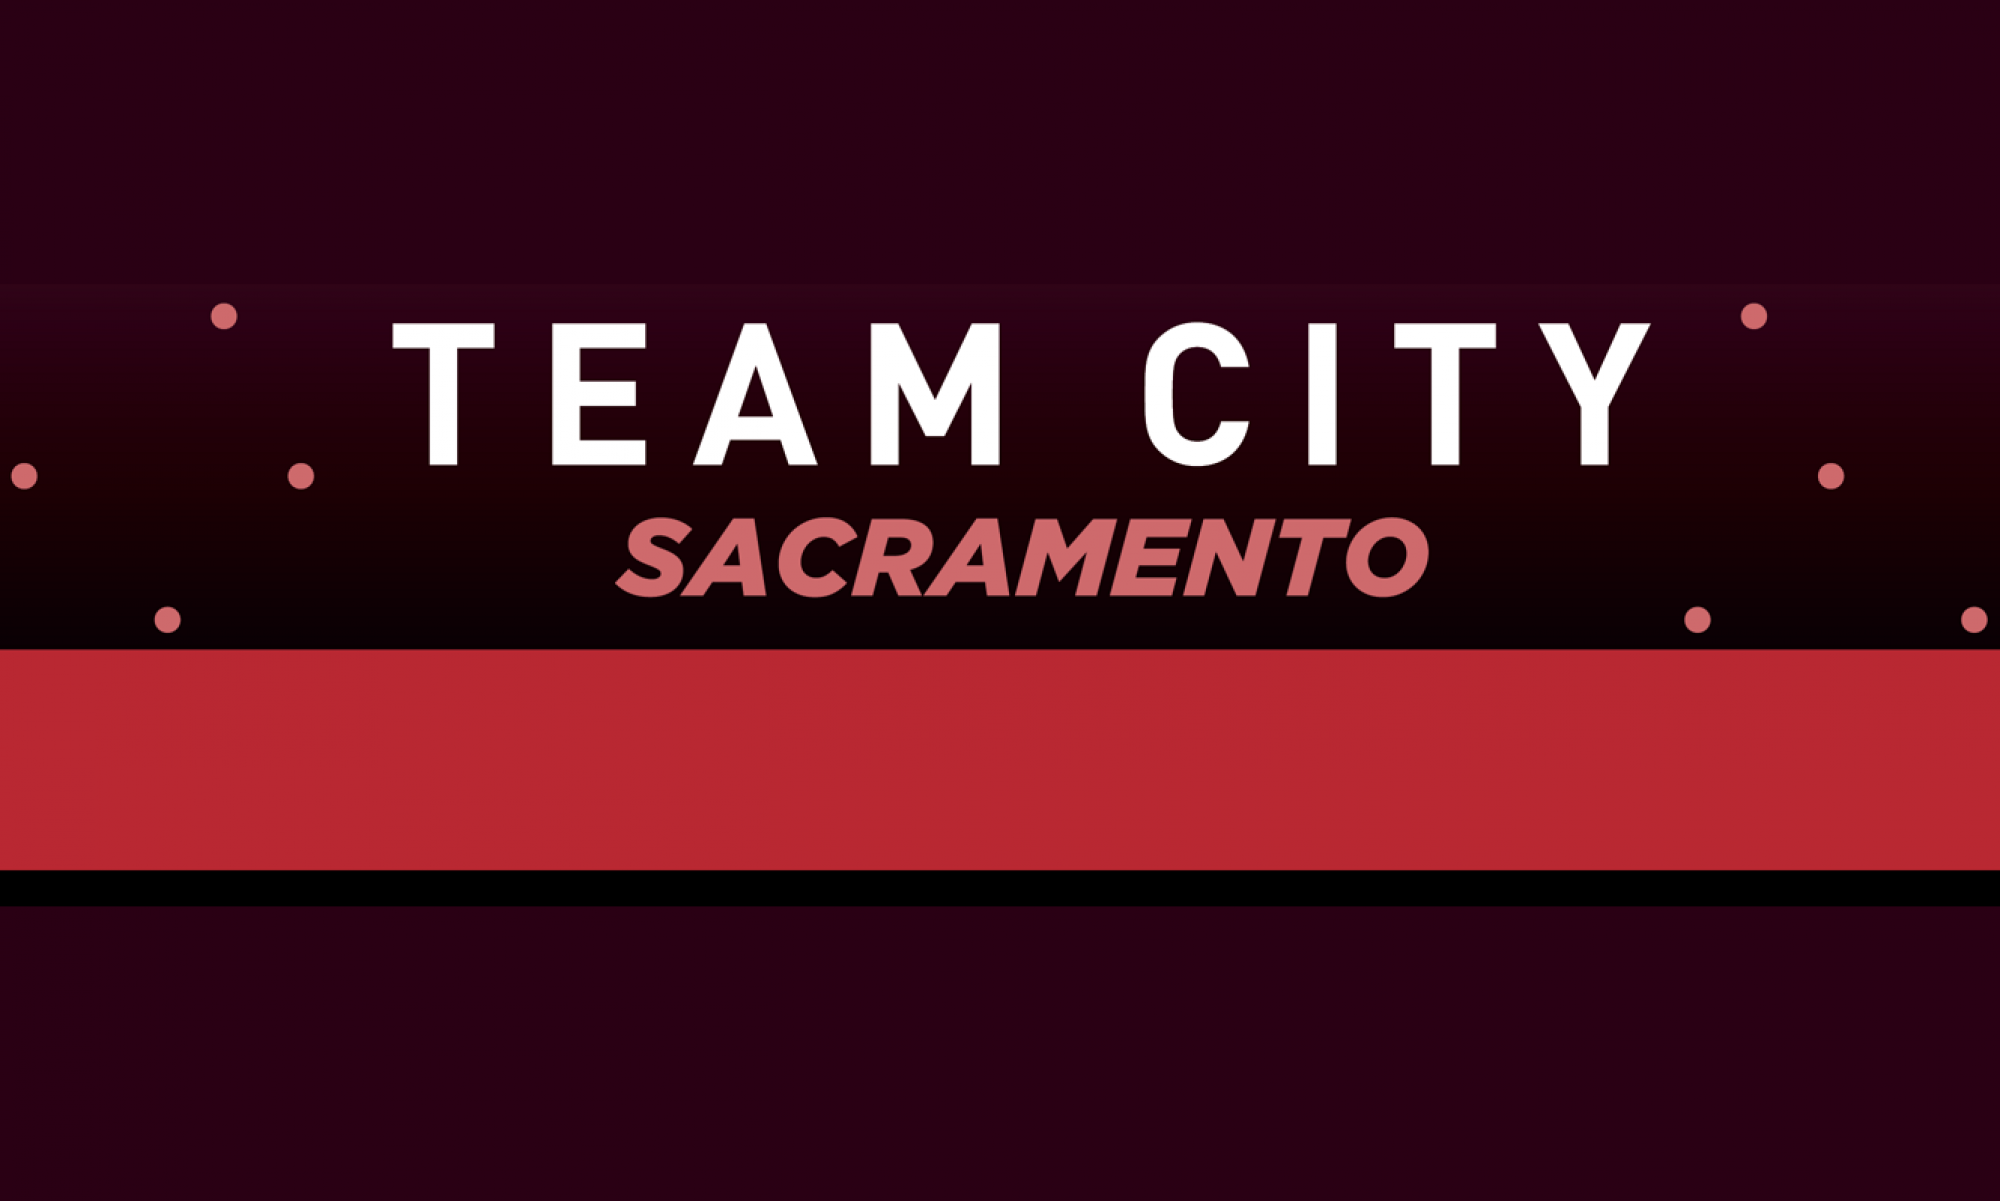 Team City Sacramento